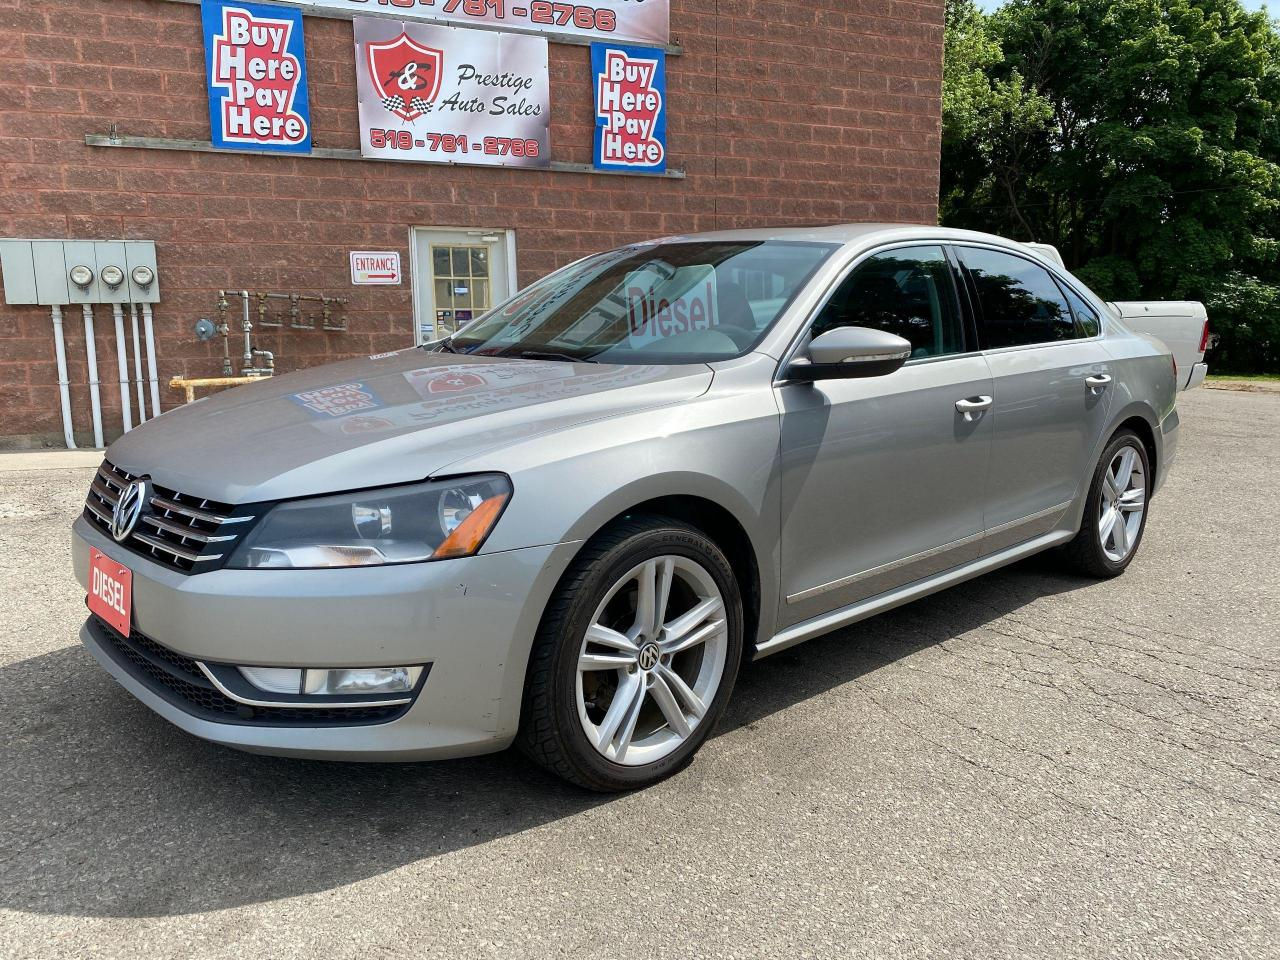 used 2012 volkswagen passat 2.0 tdi dsg highline diesel one owner no accident for sale in cambridge, ontario carpages.ca